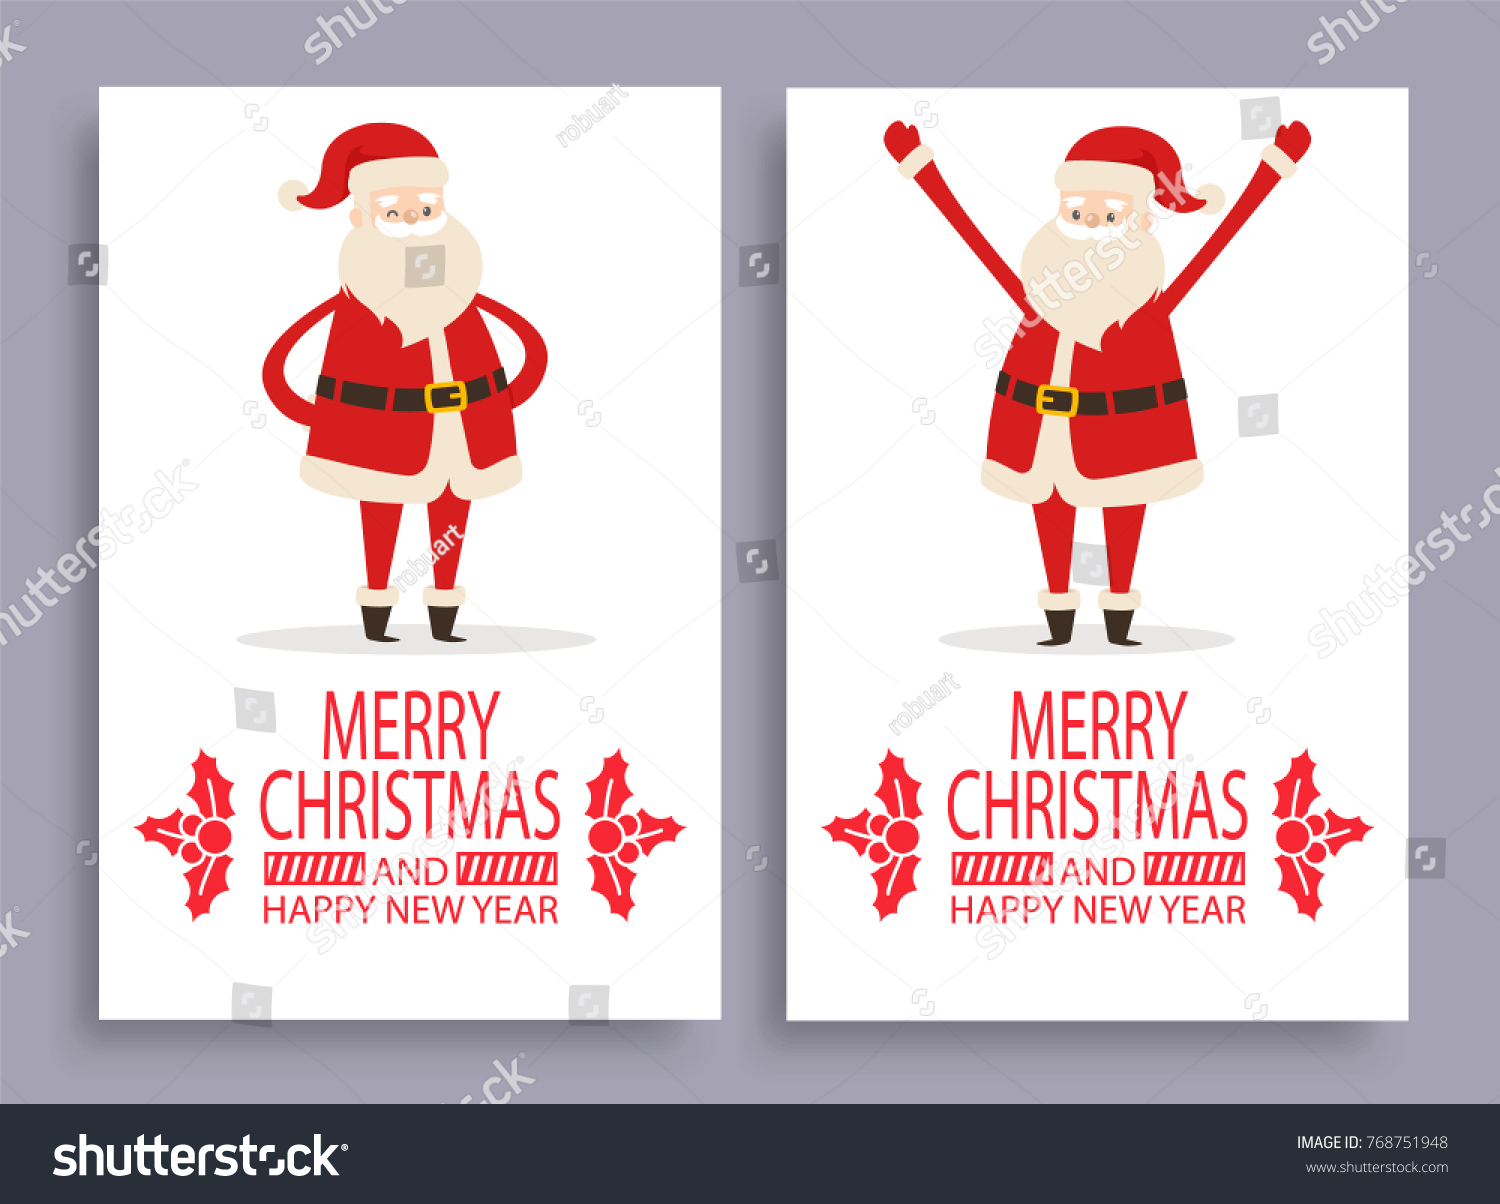 Calligraphic inscription mistletoe branches santa claus stock calligraphic inscription with mistletoe branches and santa claus symbol of winter holidays vector postcard isolated buycottarizona Image collections